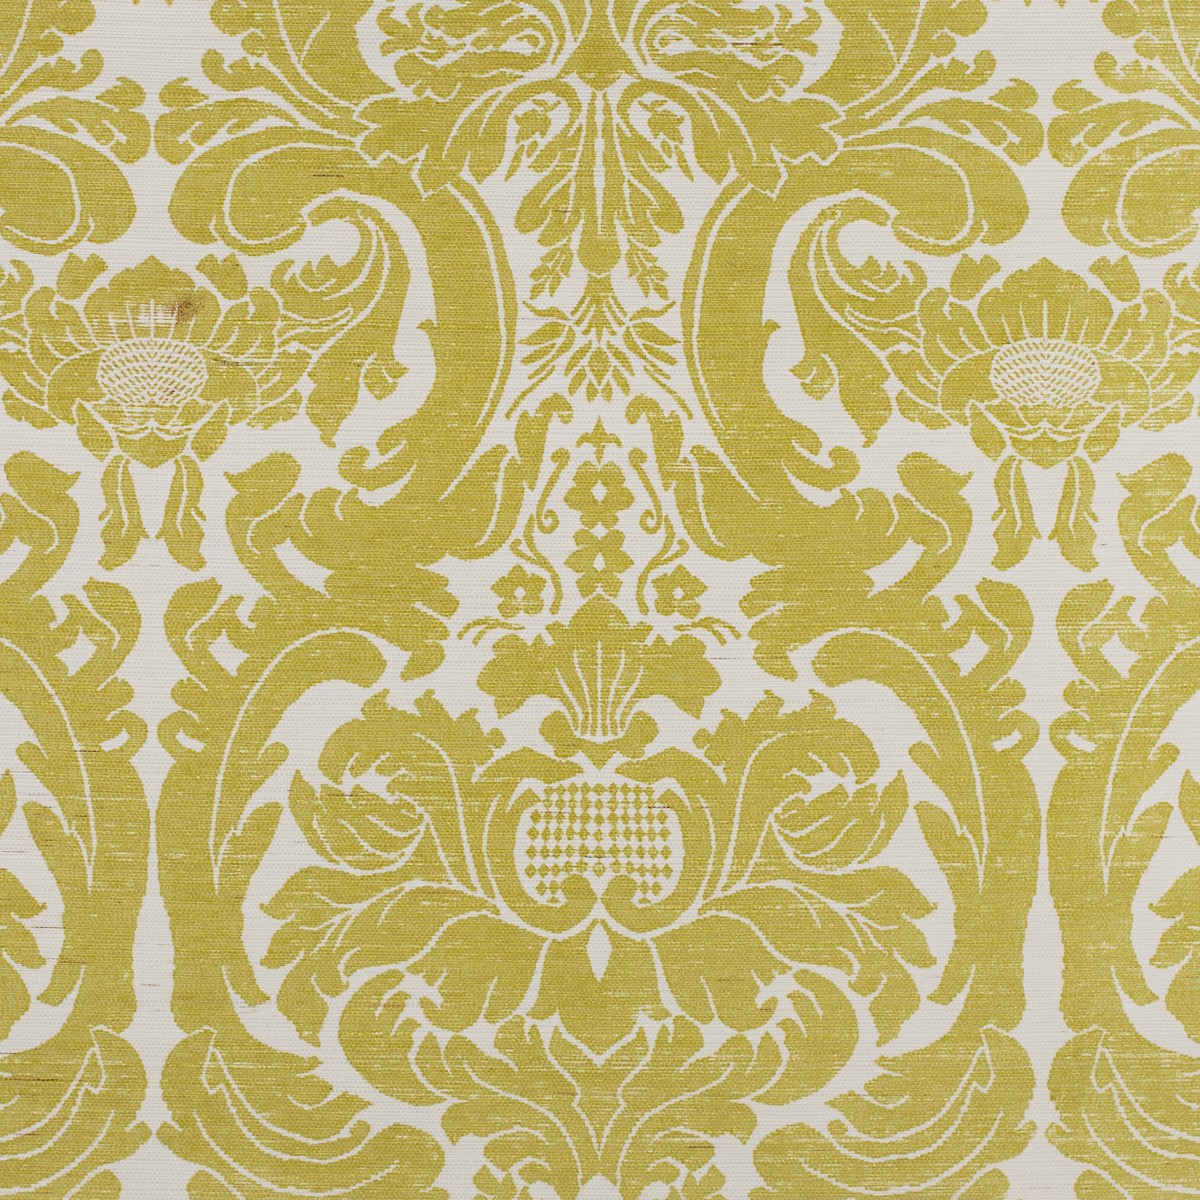 Grasscloth Wallpaper Printed Bernard Thorp Fabric And